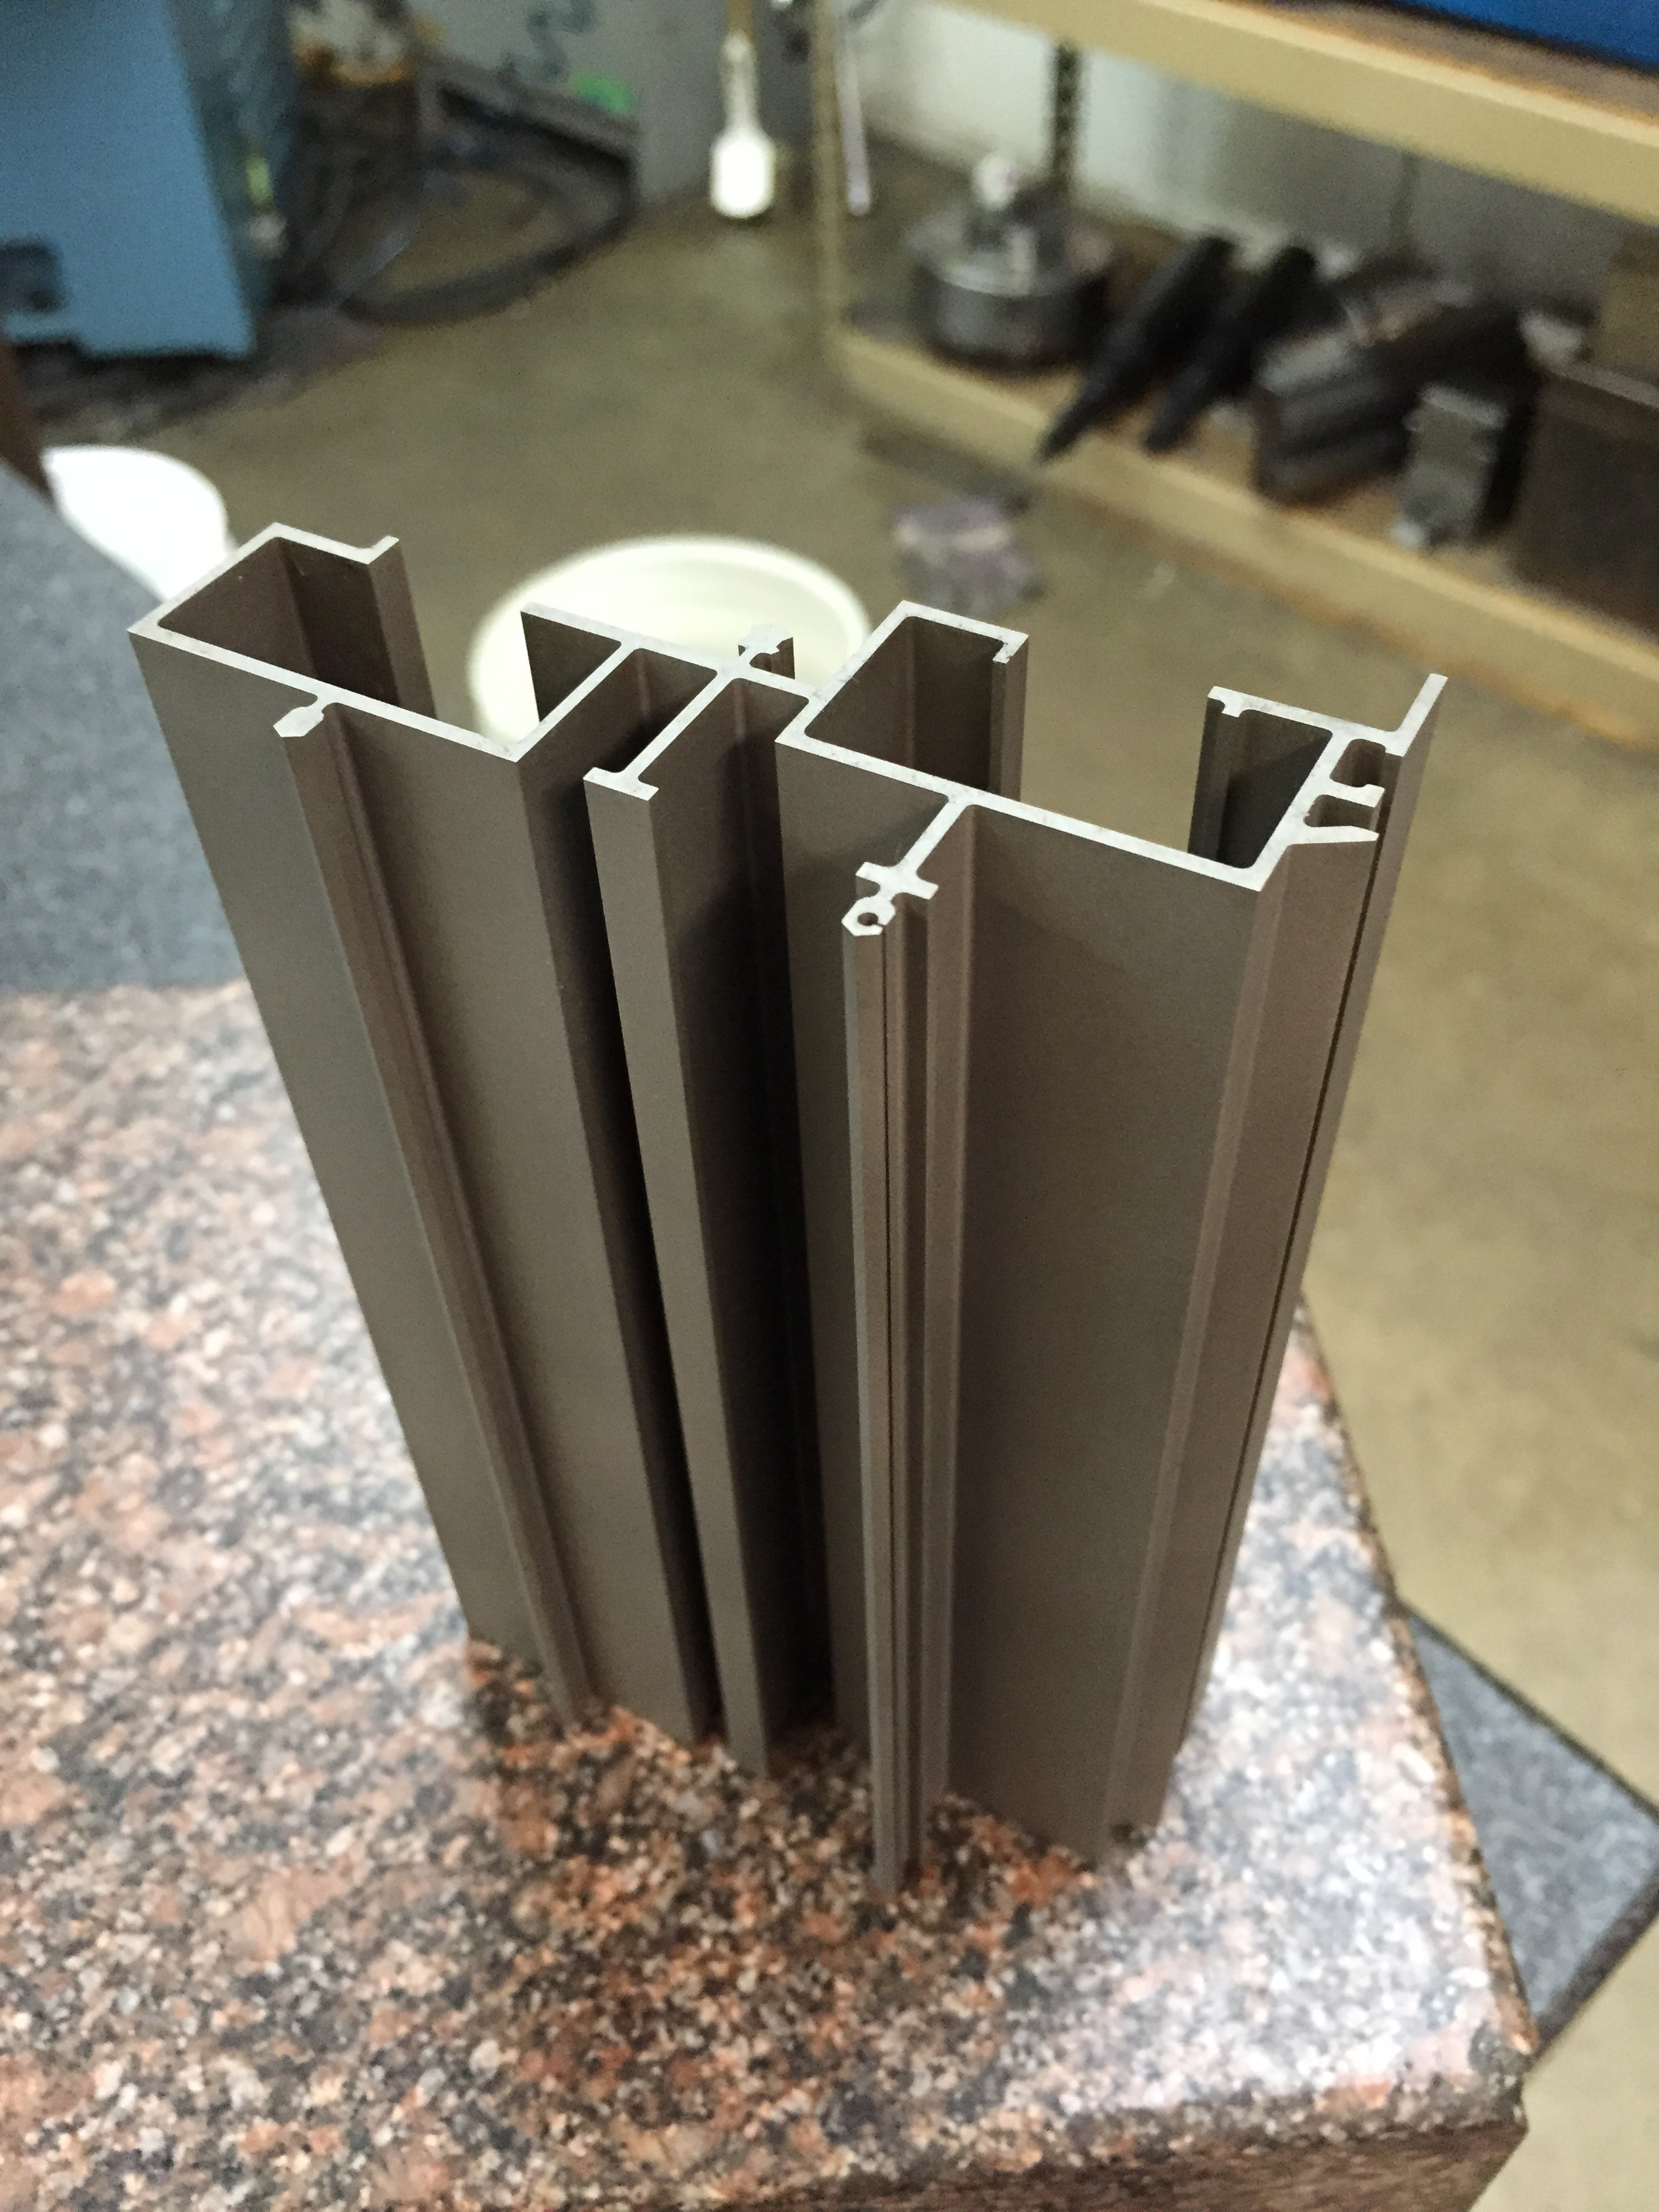 Tinned Copper Wire Djfs moreover Panduit Kdnffibo moreover  in addition  as well Zinc Painted Pmt Zips. on copper electrical wire sizes